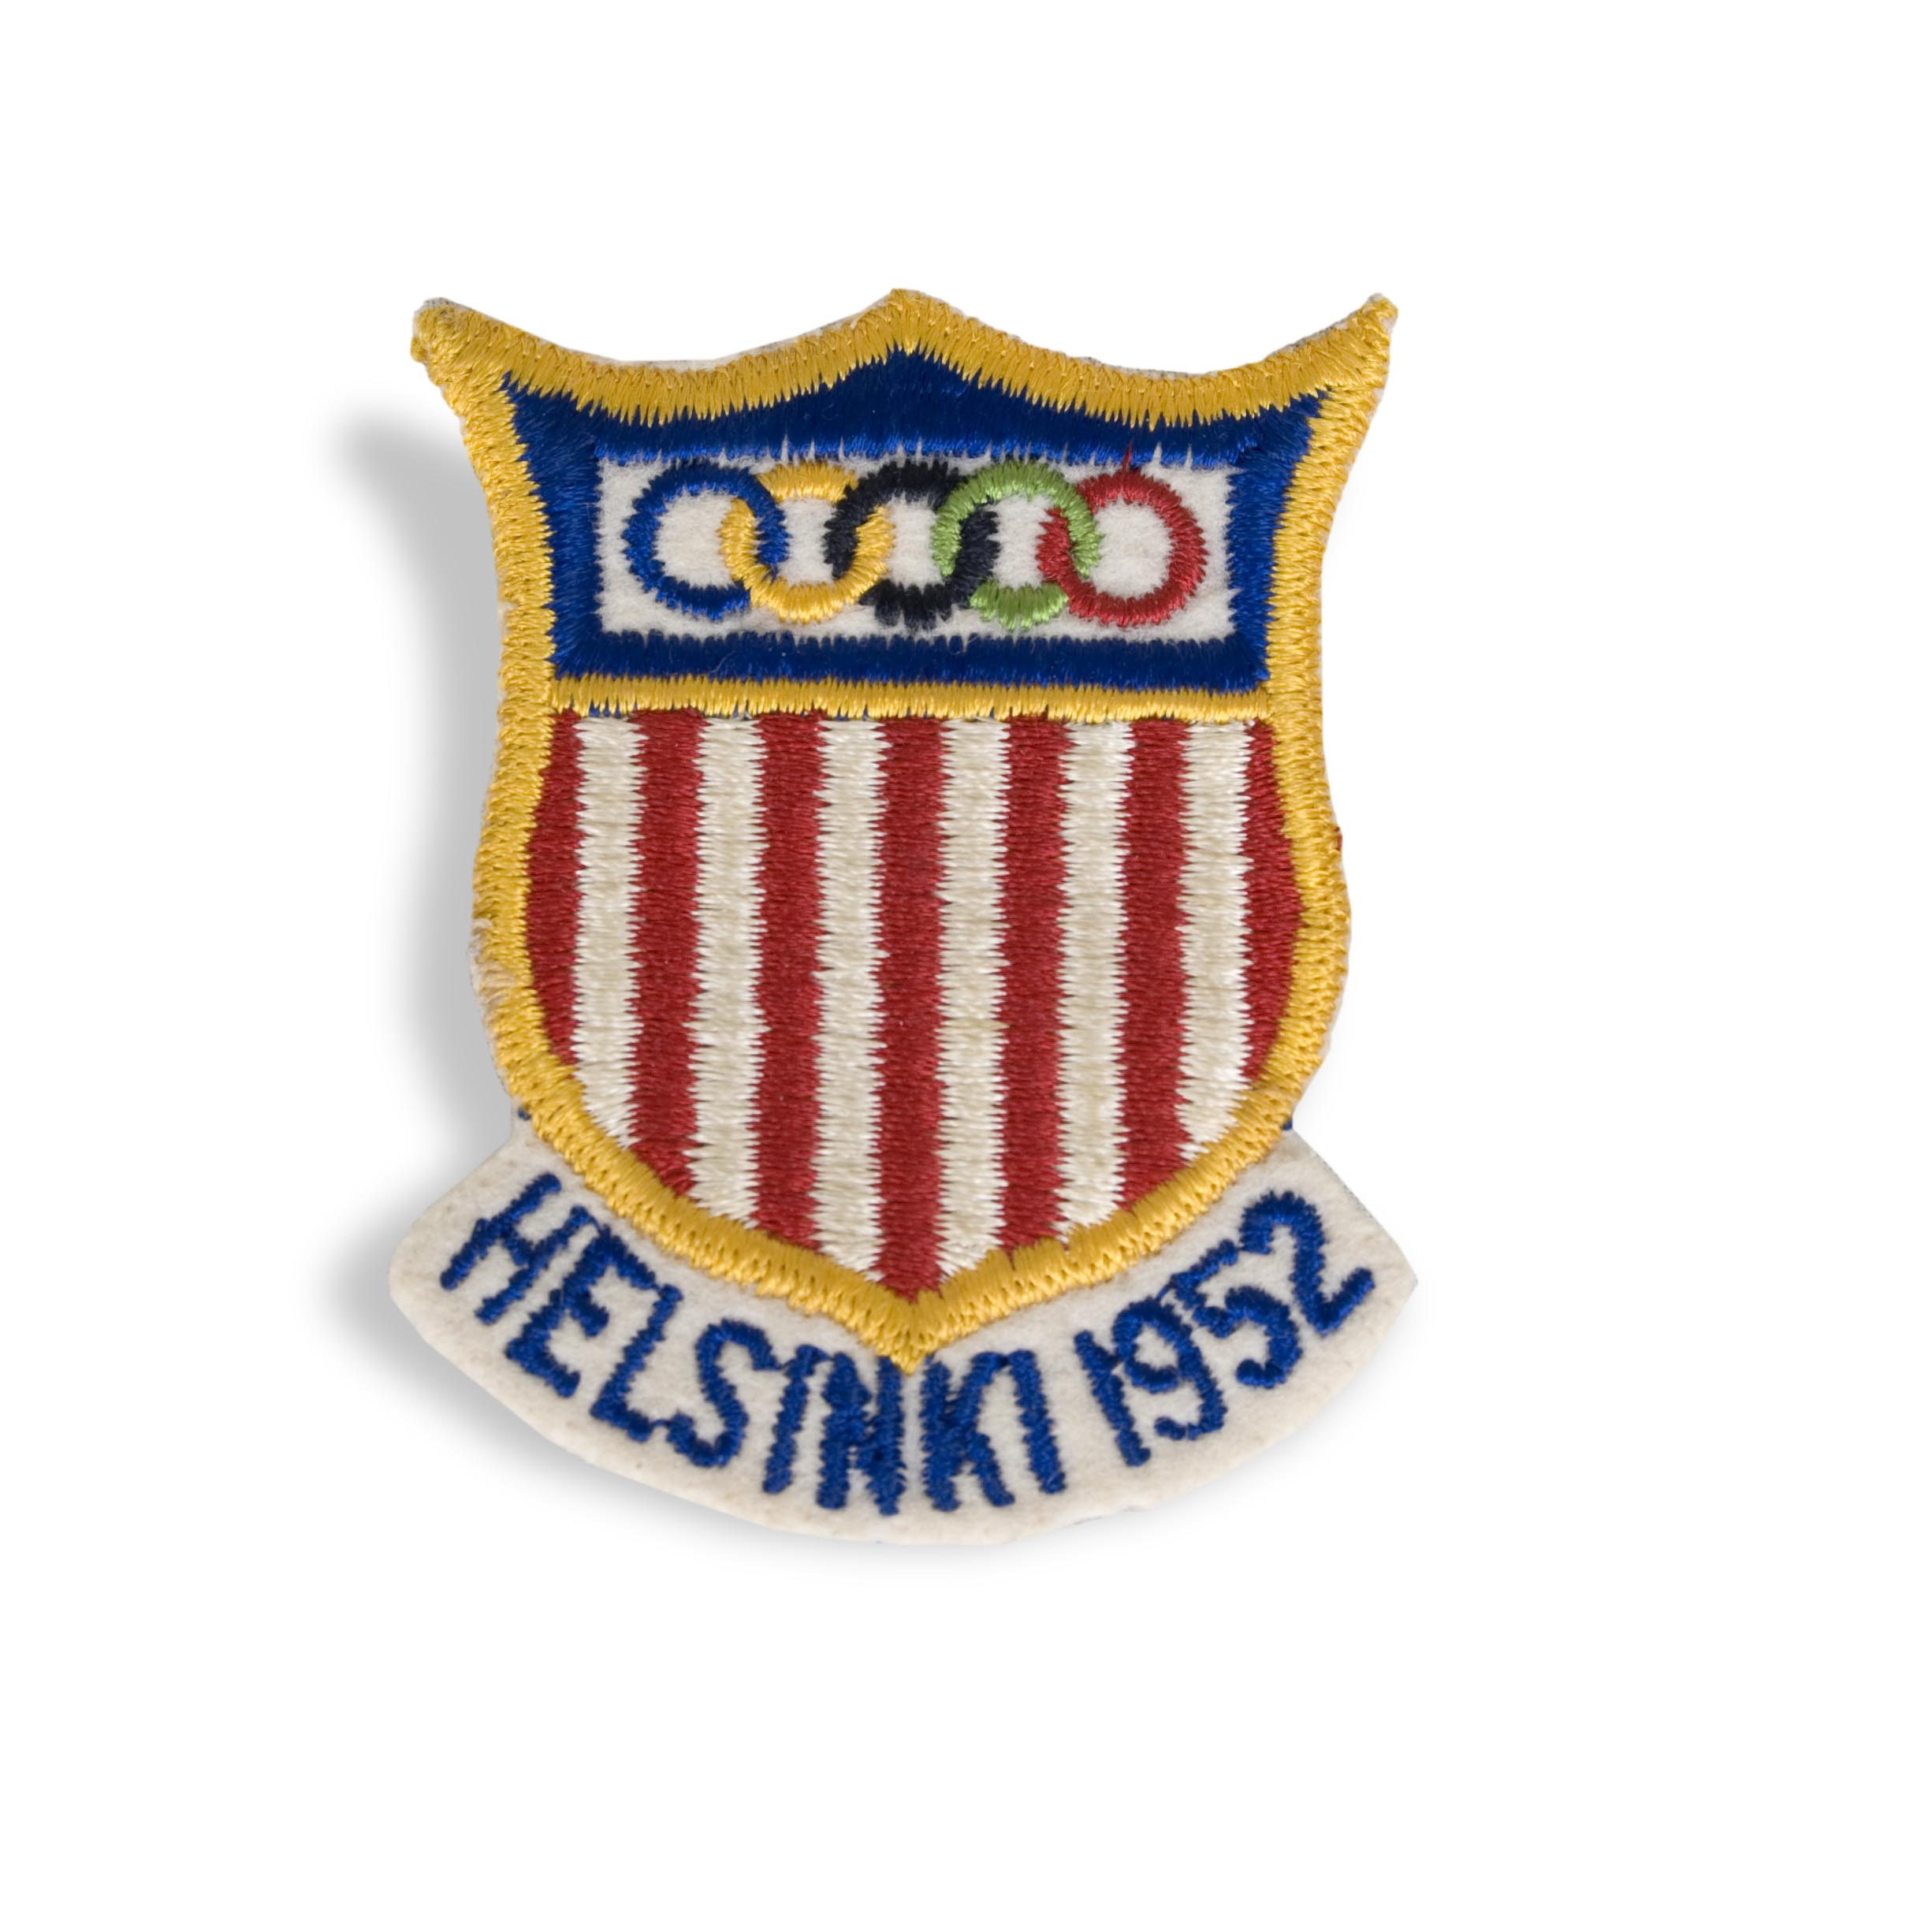 Wes  Santee's patch from the Helsinki Olympics.